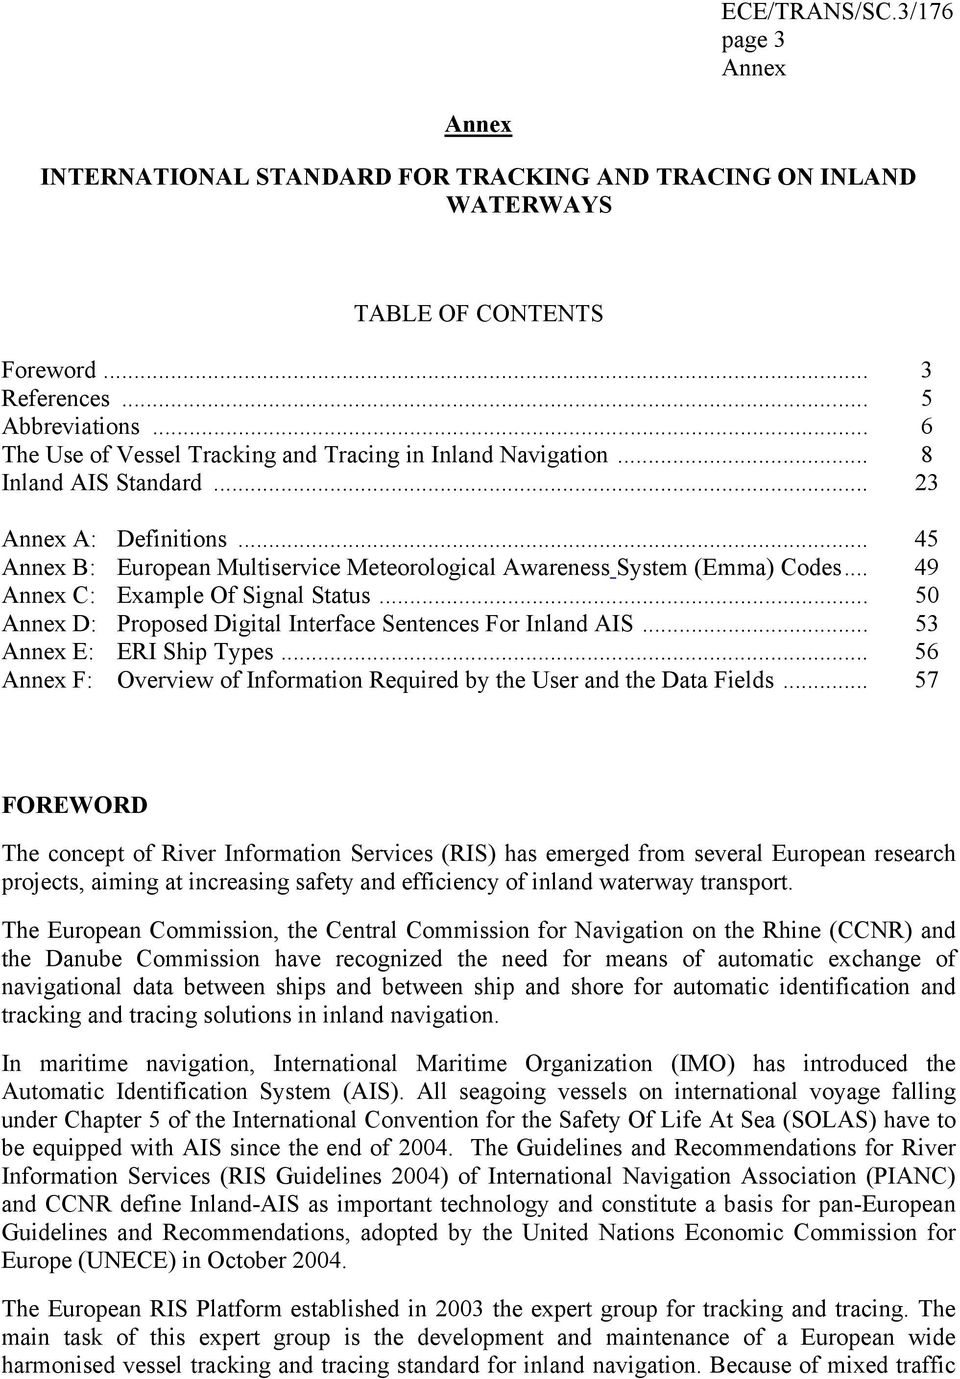 INTERNATIONAL STANDARD FOR TRACKING AND TRACING ON INLAND